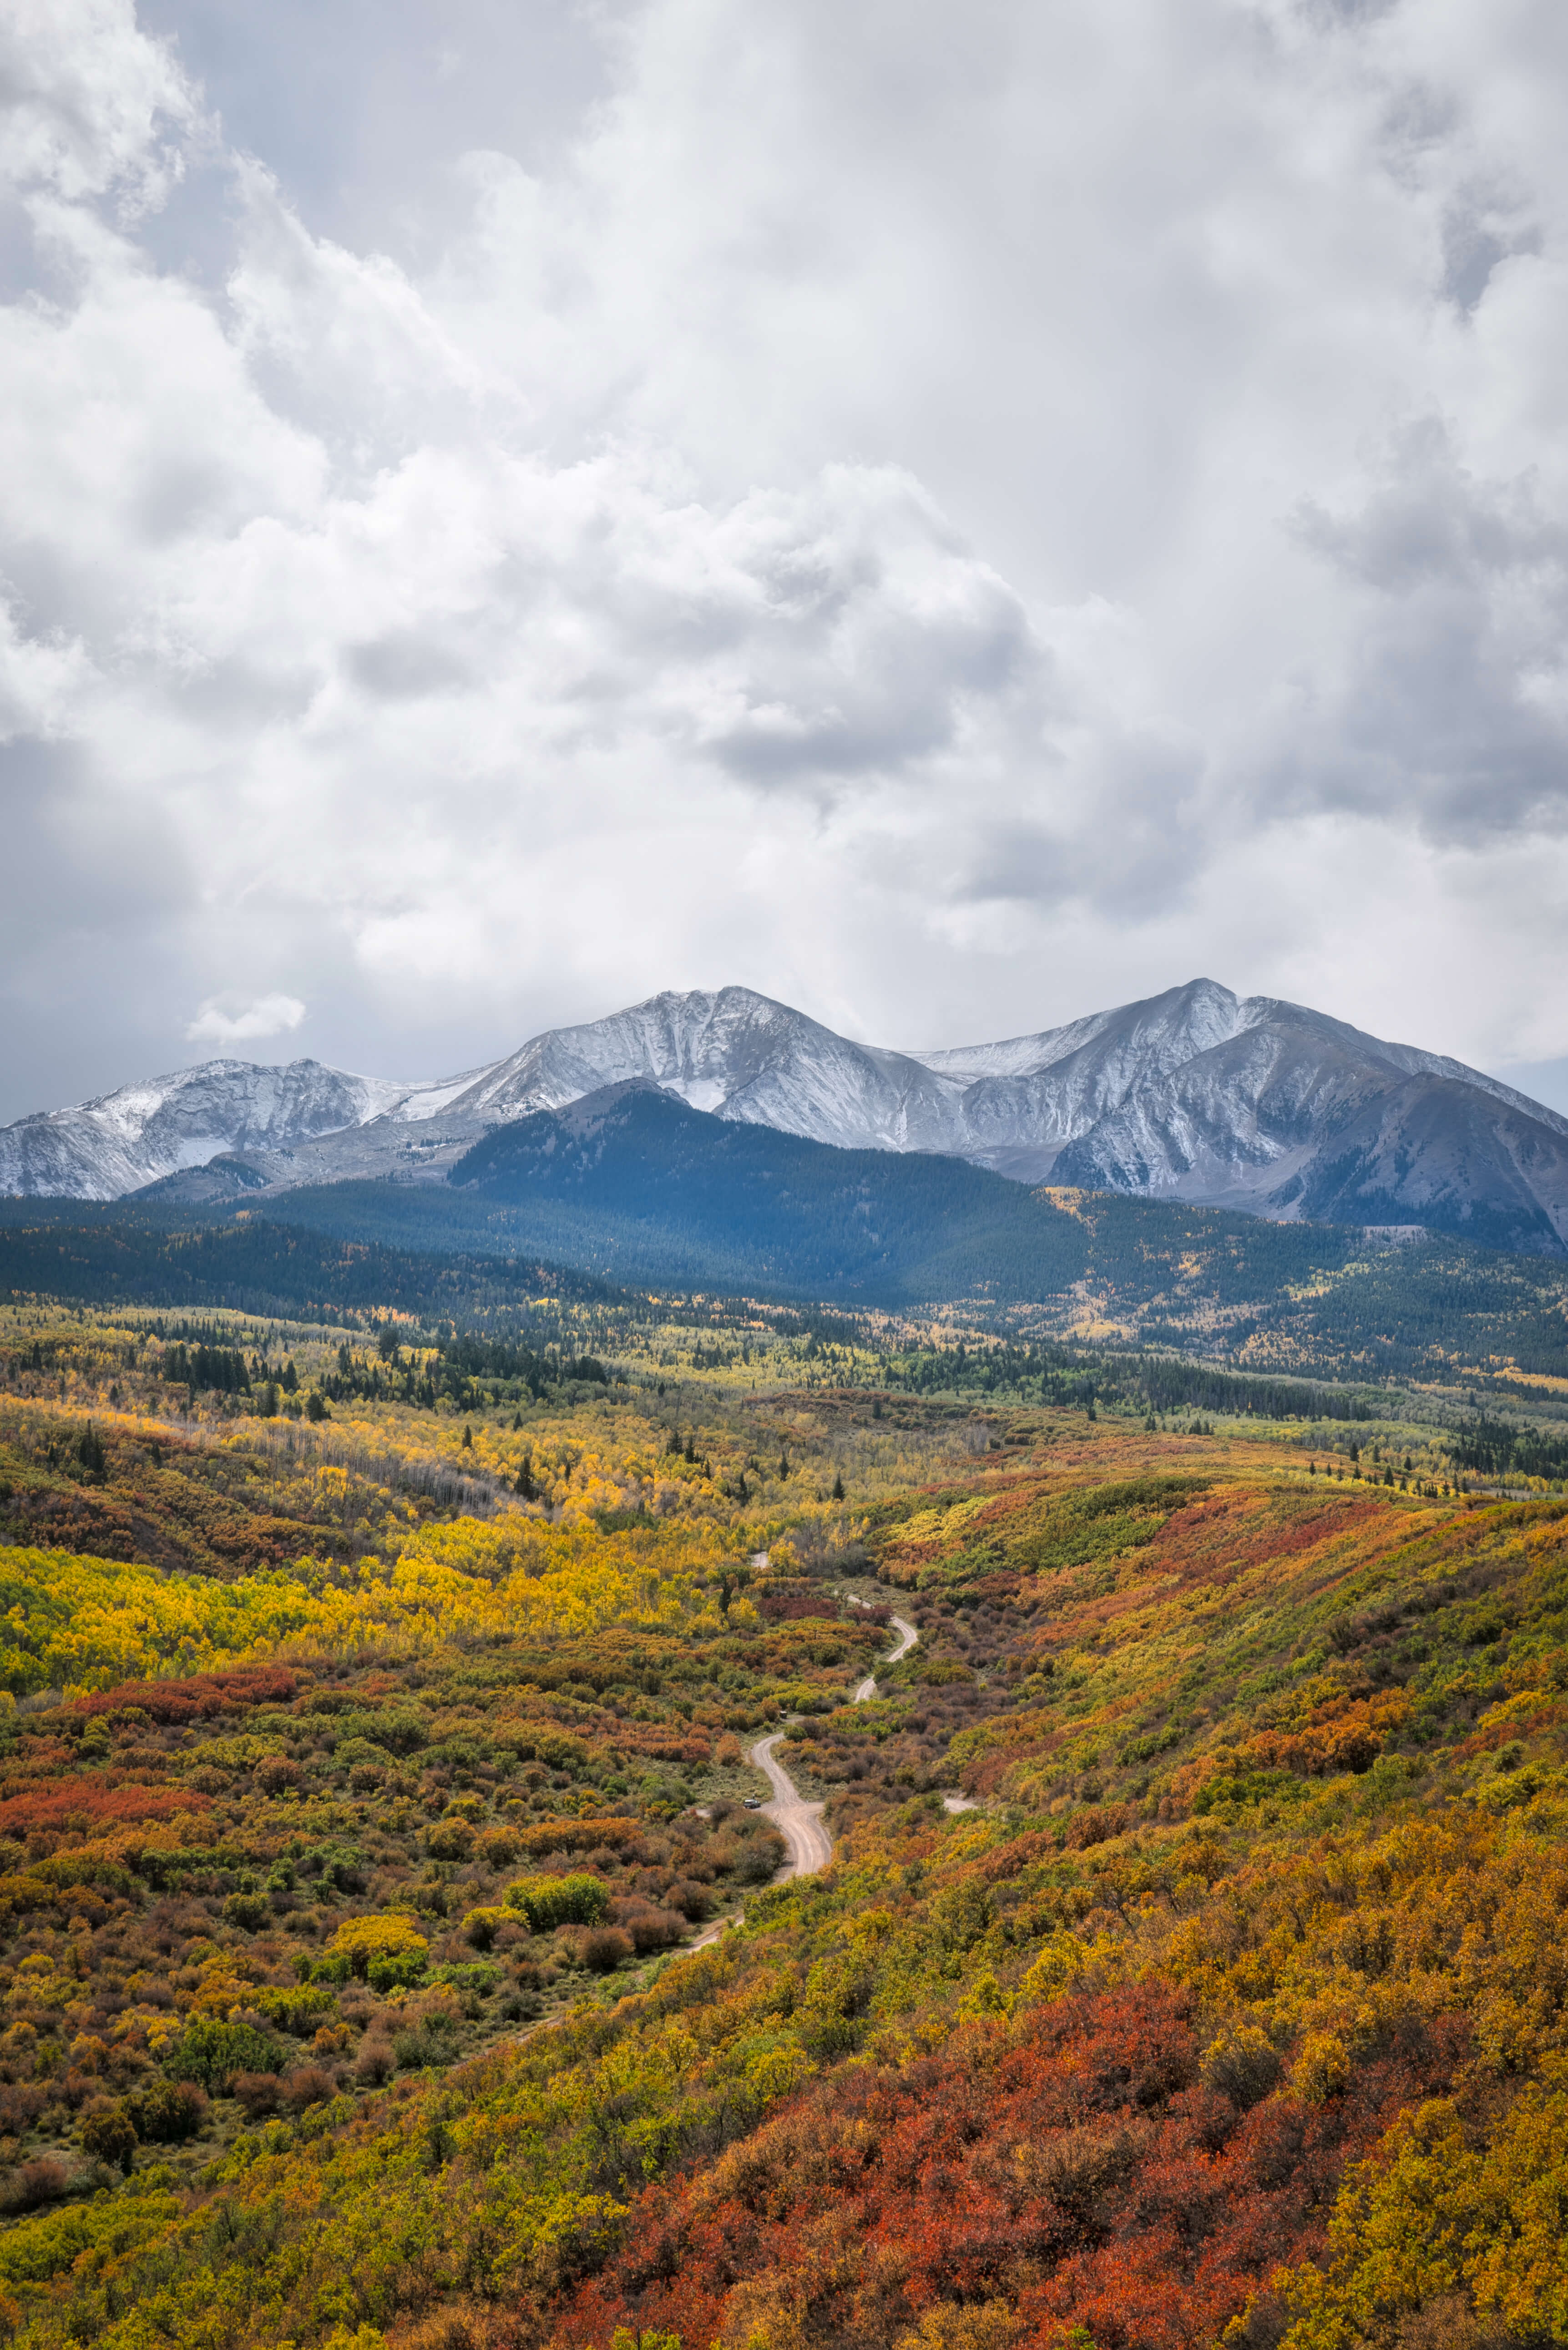 Fall colors on Mount Sopris photographed on the Intentionally Lost cycling tour and photography workshop